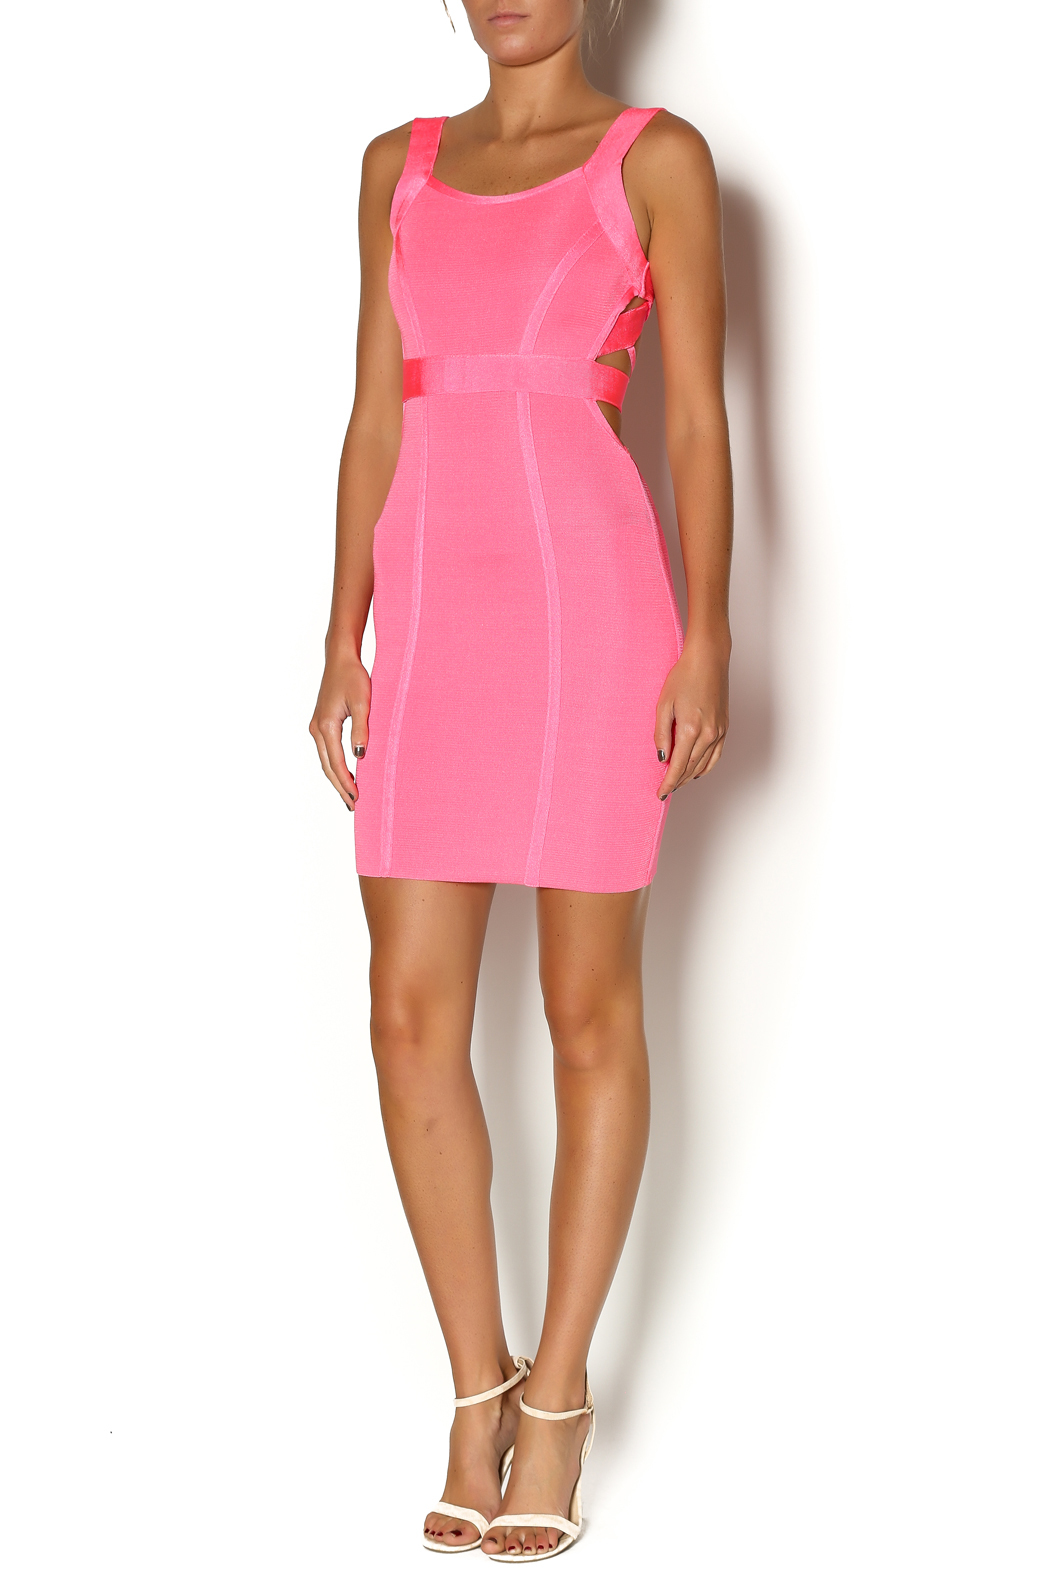 Wow Couture Pink Cut Out Dress from Houston by Heiress Boutique ... eaa4d39749e2